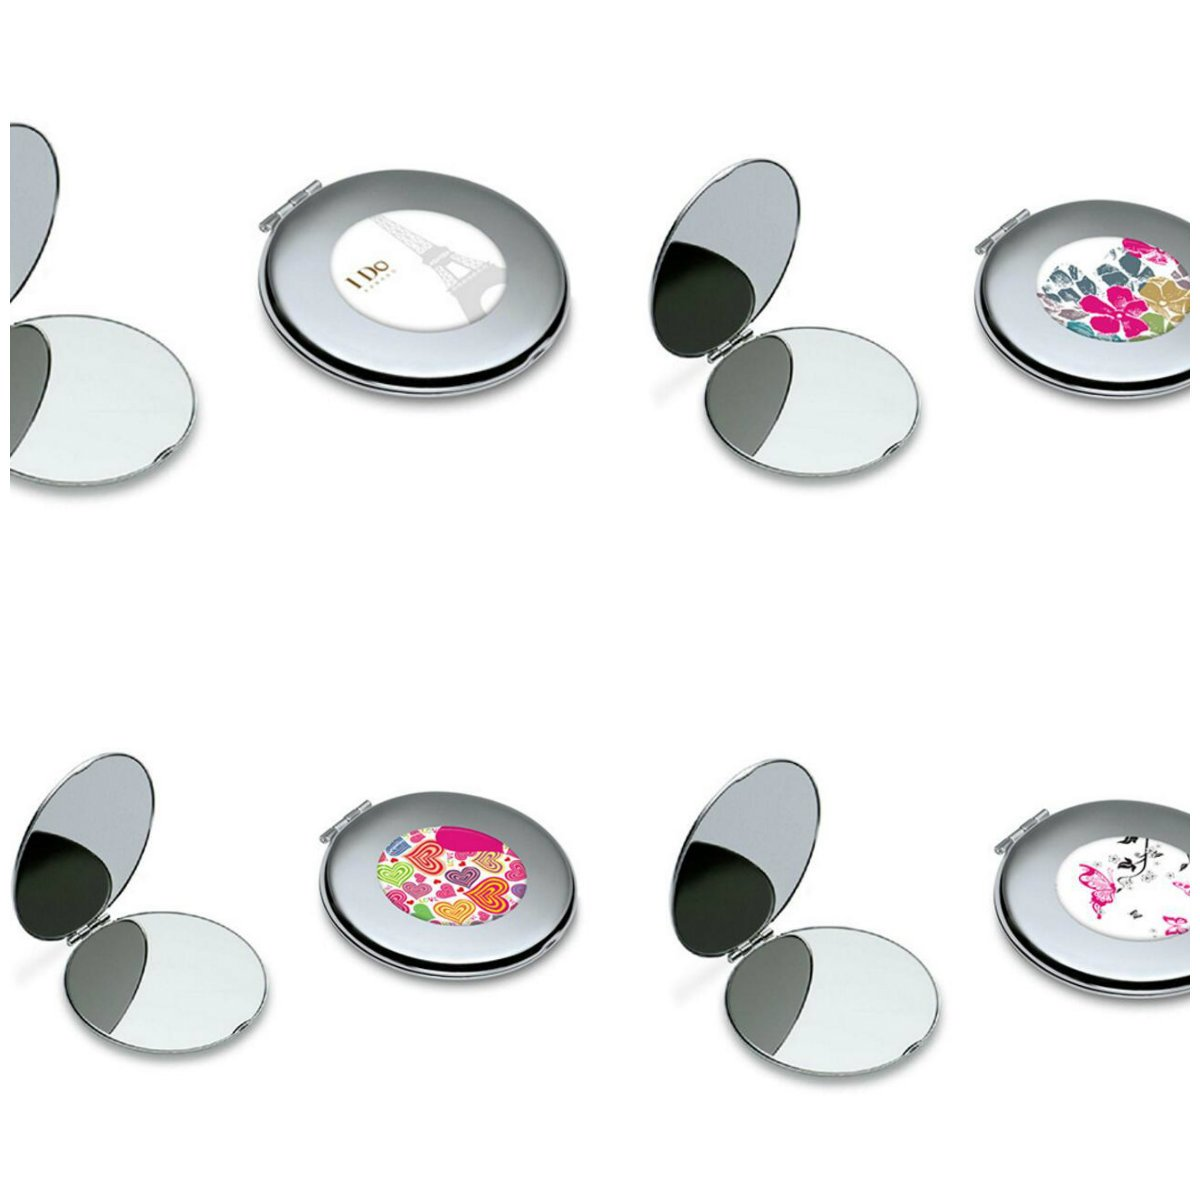 Yingealy Childrens Mirror Mini Butterfly Pattern Round Metal Small Glass Mirrors Circles for Crafts Decoration Cosmetic Accessory by Yingealy (Image #6)